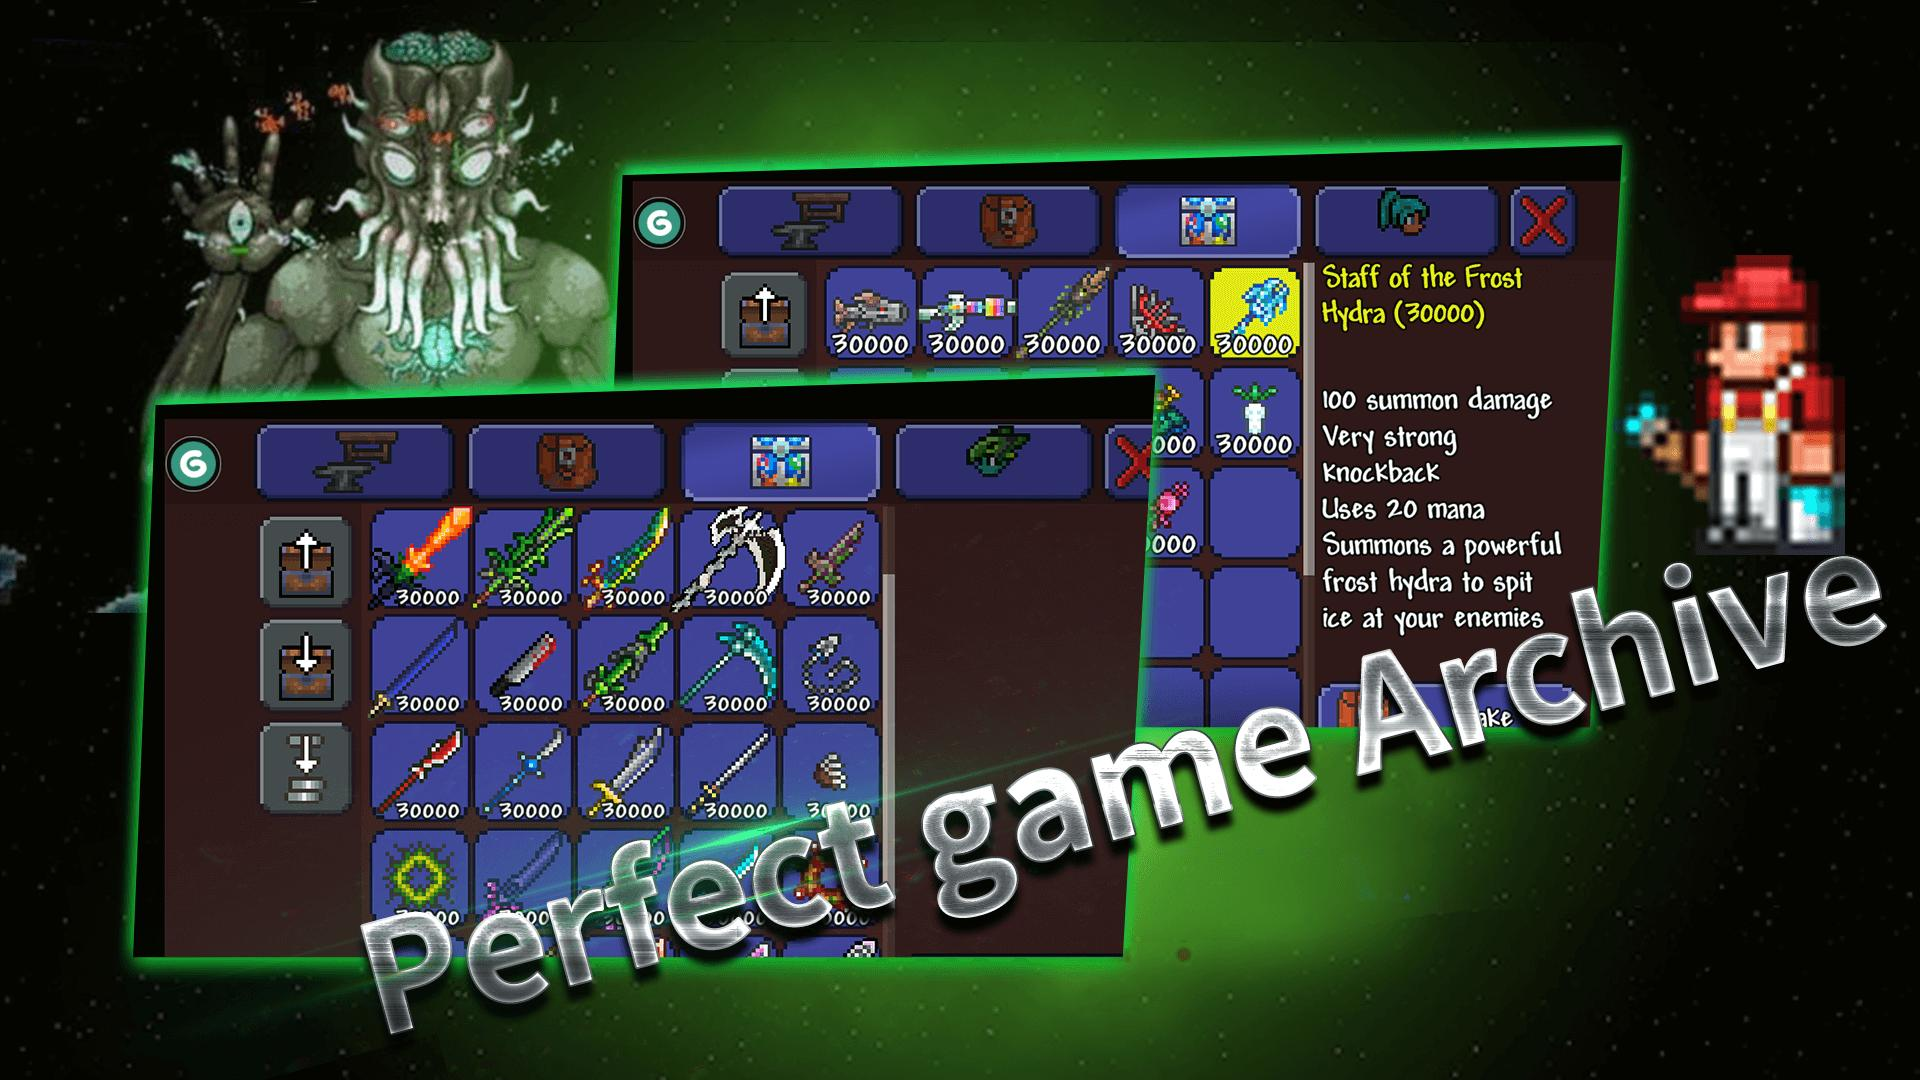 GG Toolbox for Terraria (Mods) for Android - APK Download